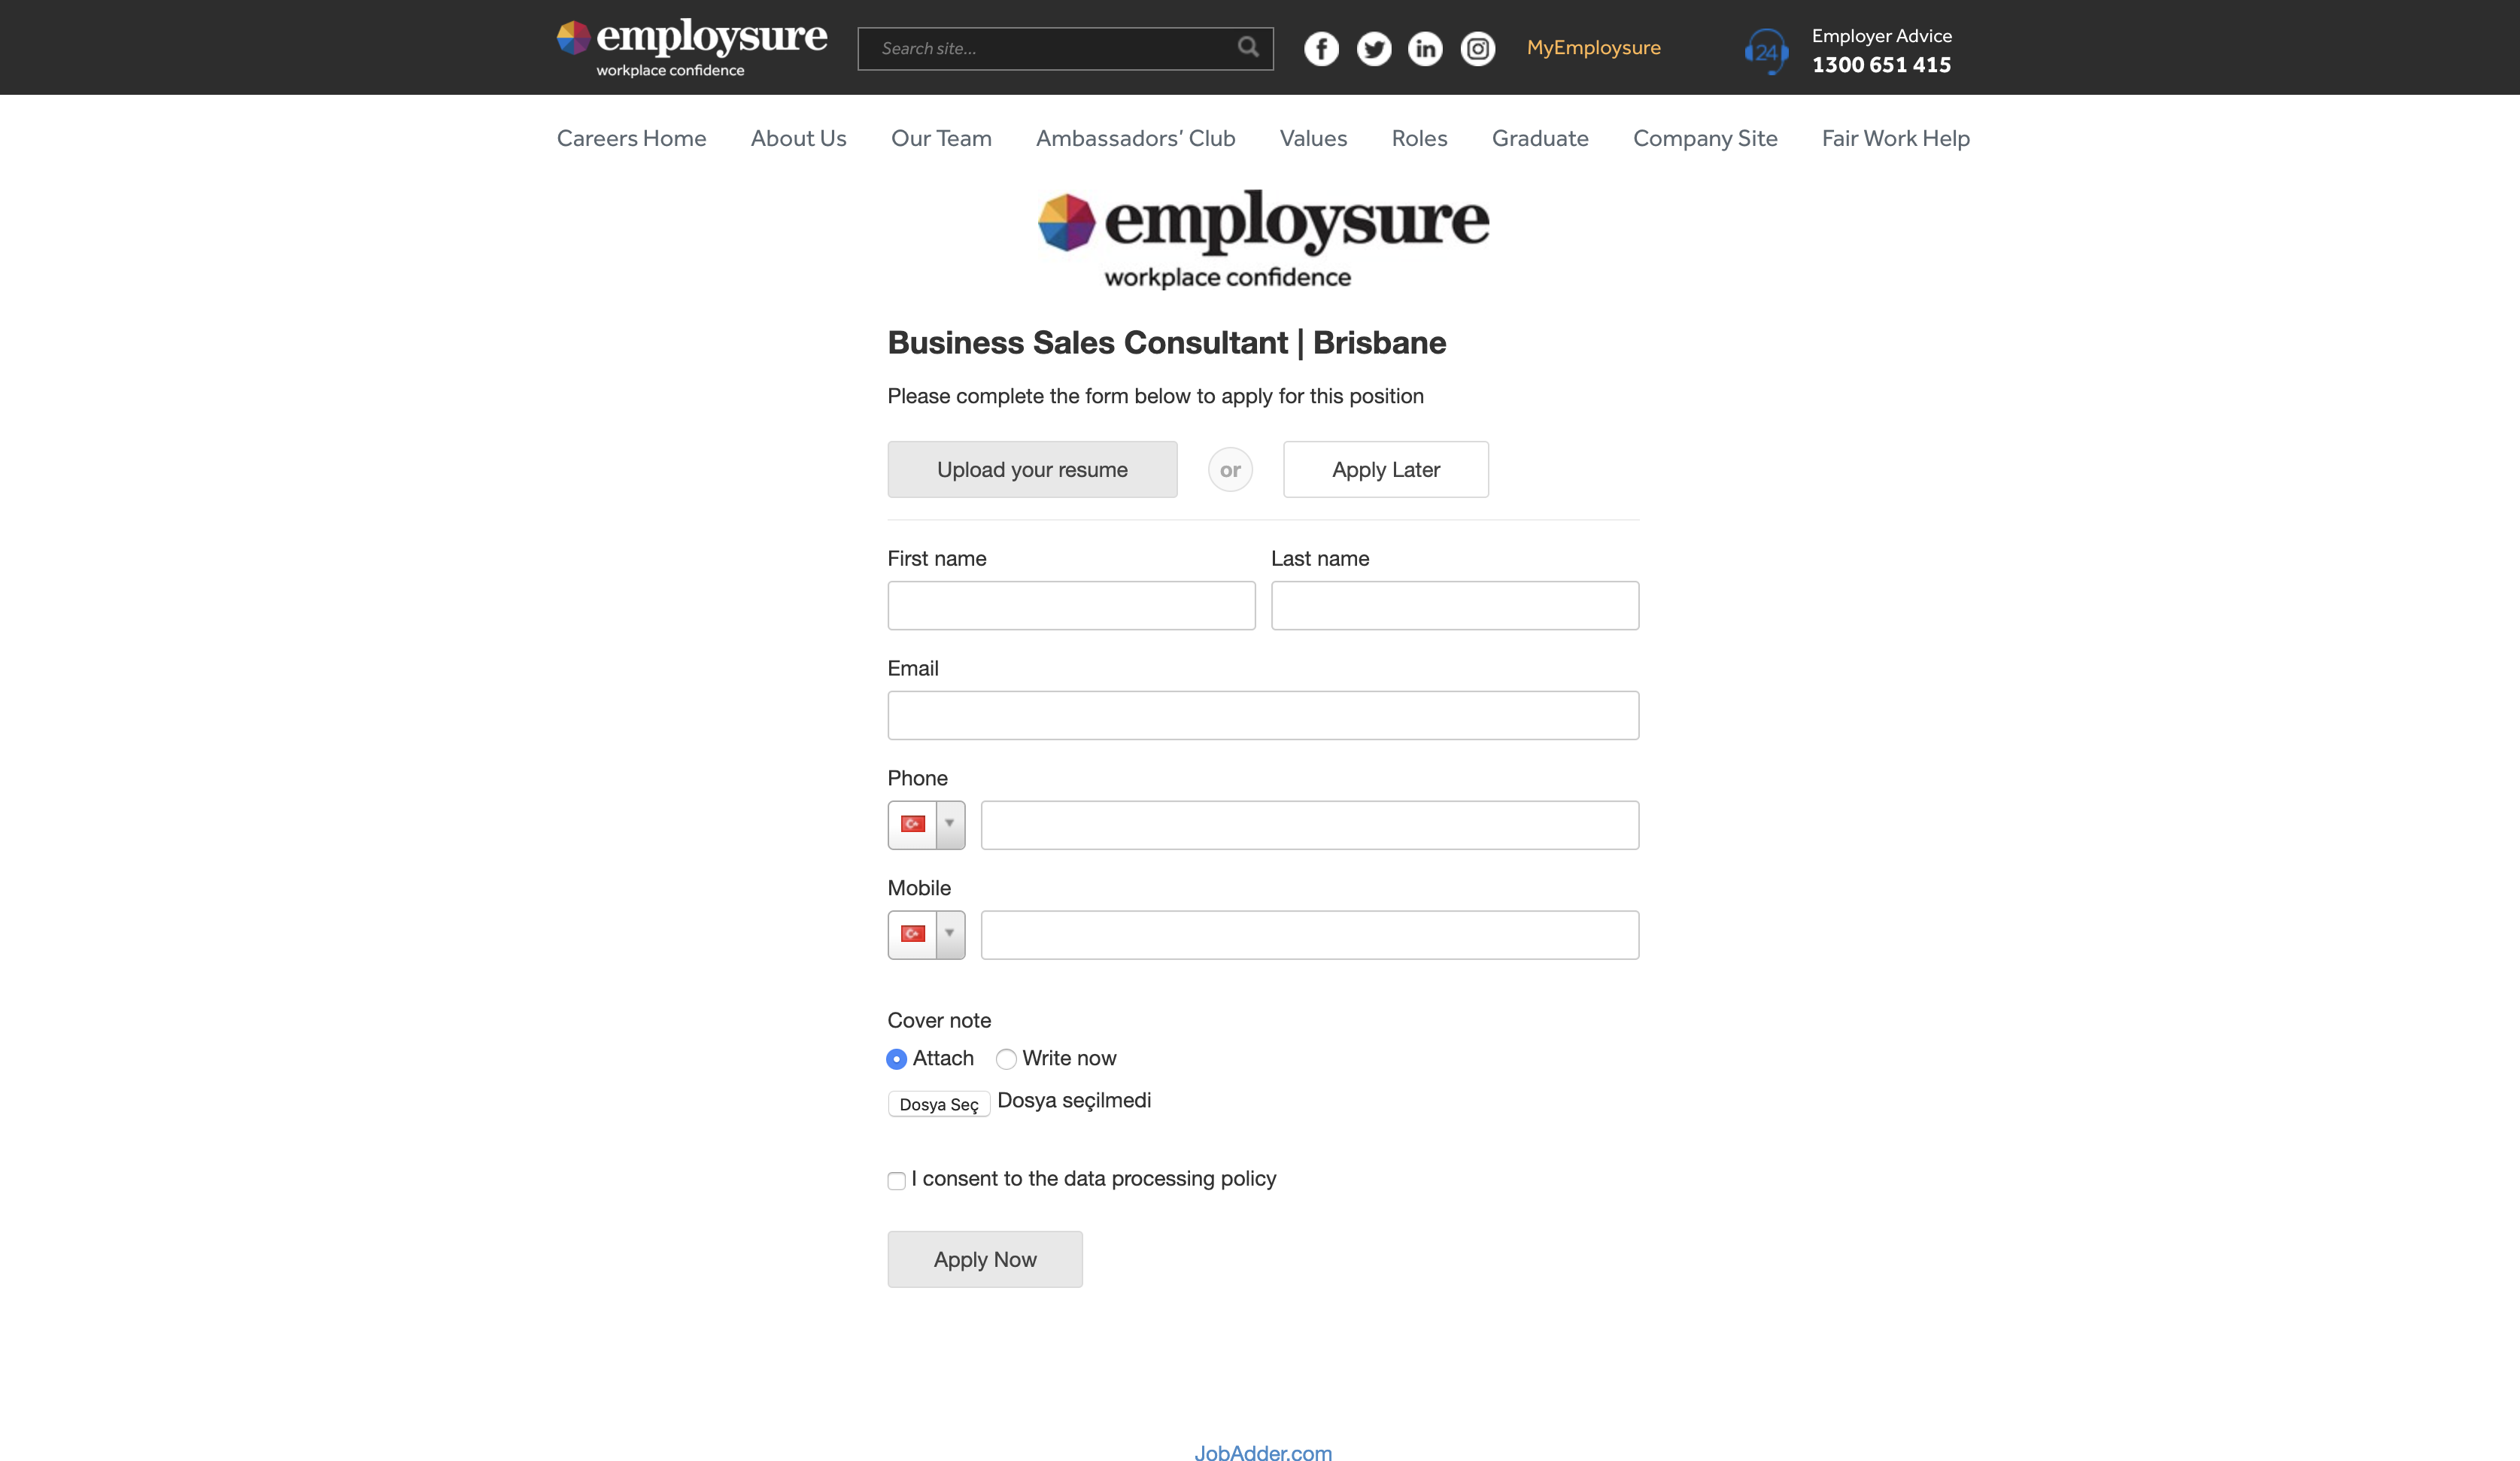 employsure job application step 5